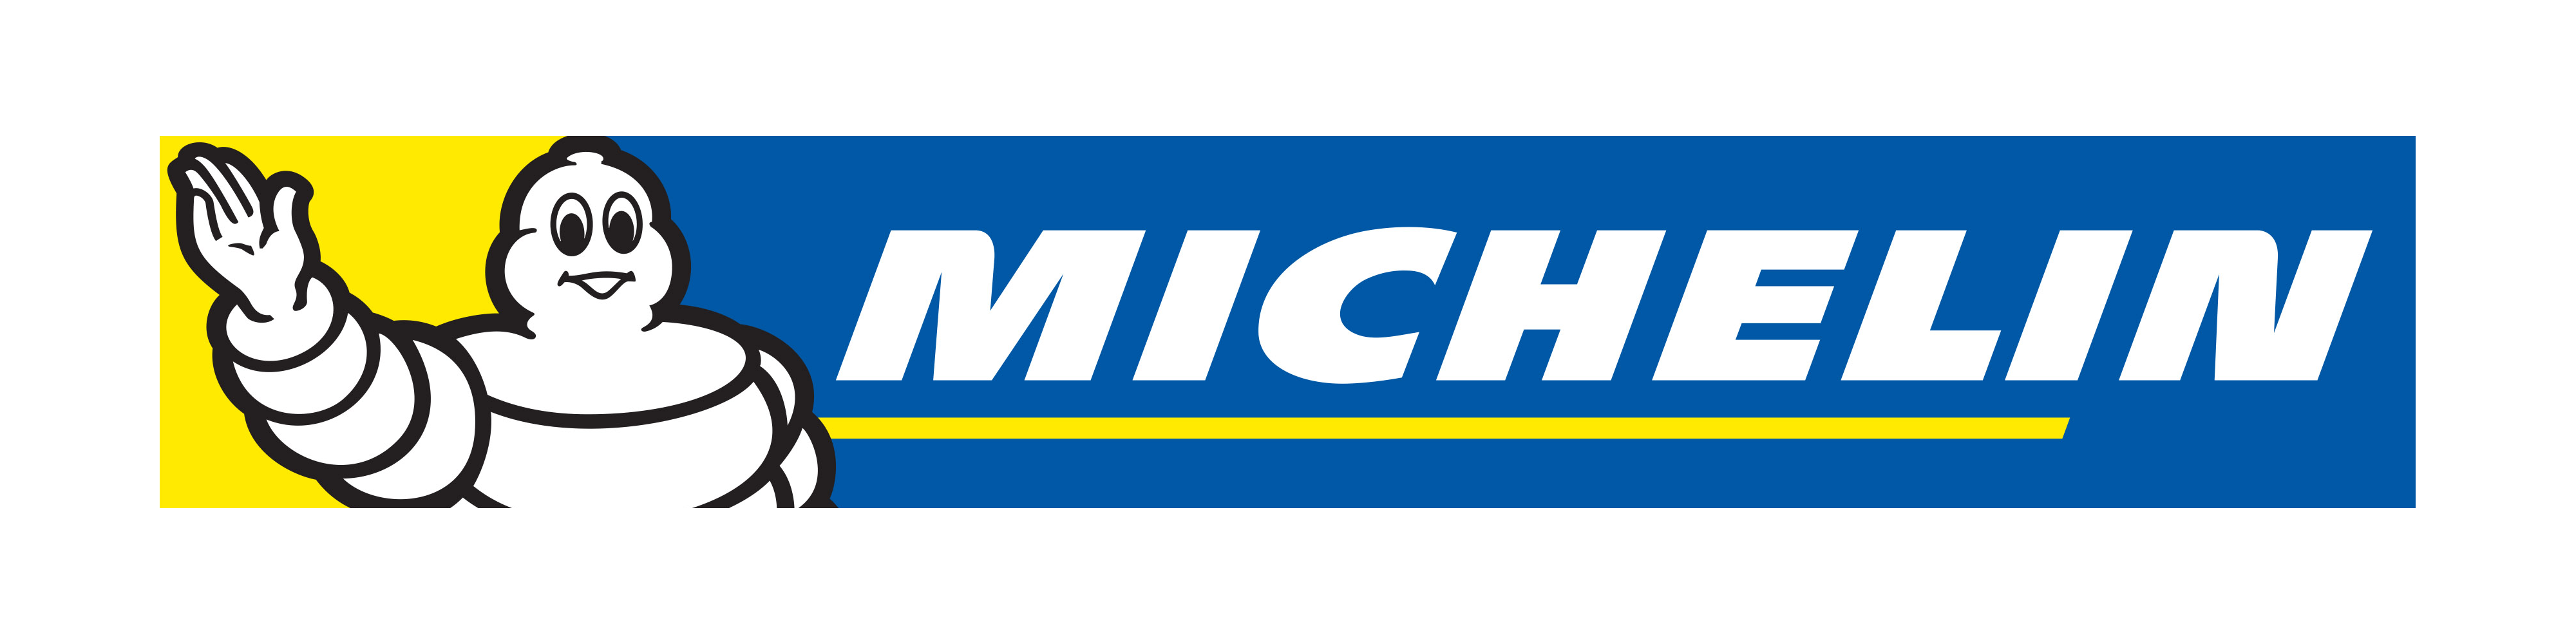 4000x1000 HD png - Michelin PNG